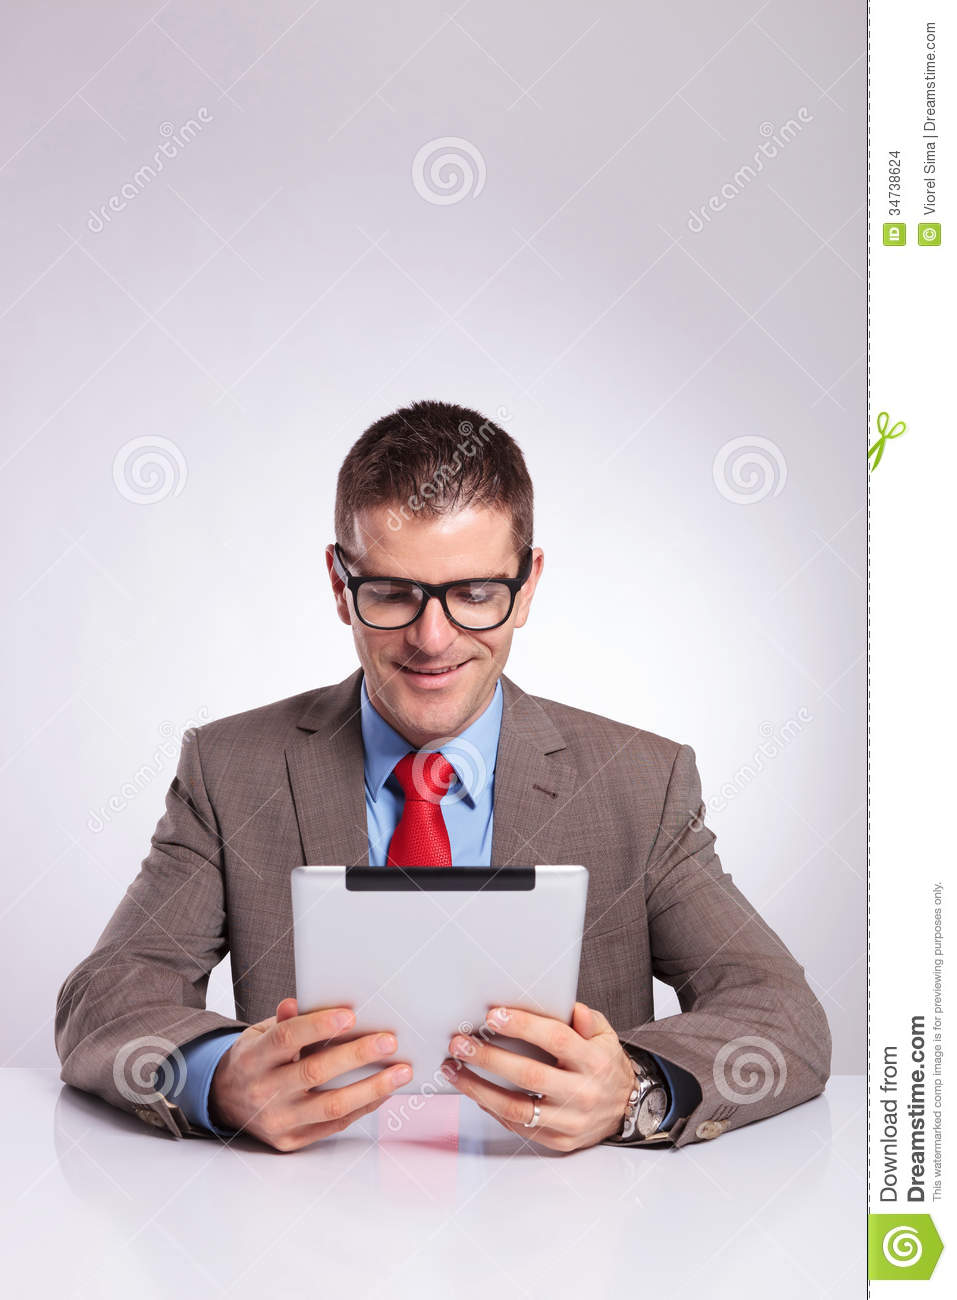 Business Man Reading Something On His Tablet Pad Royalty